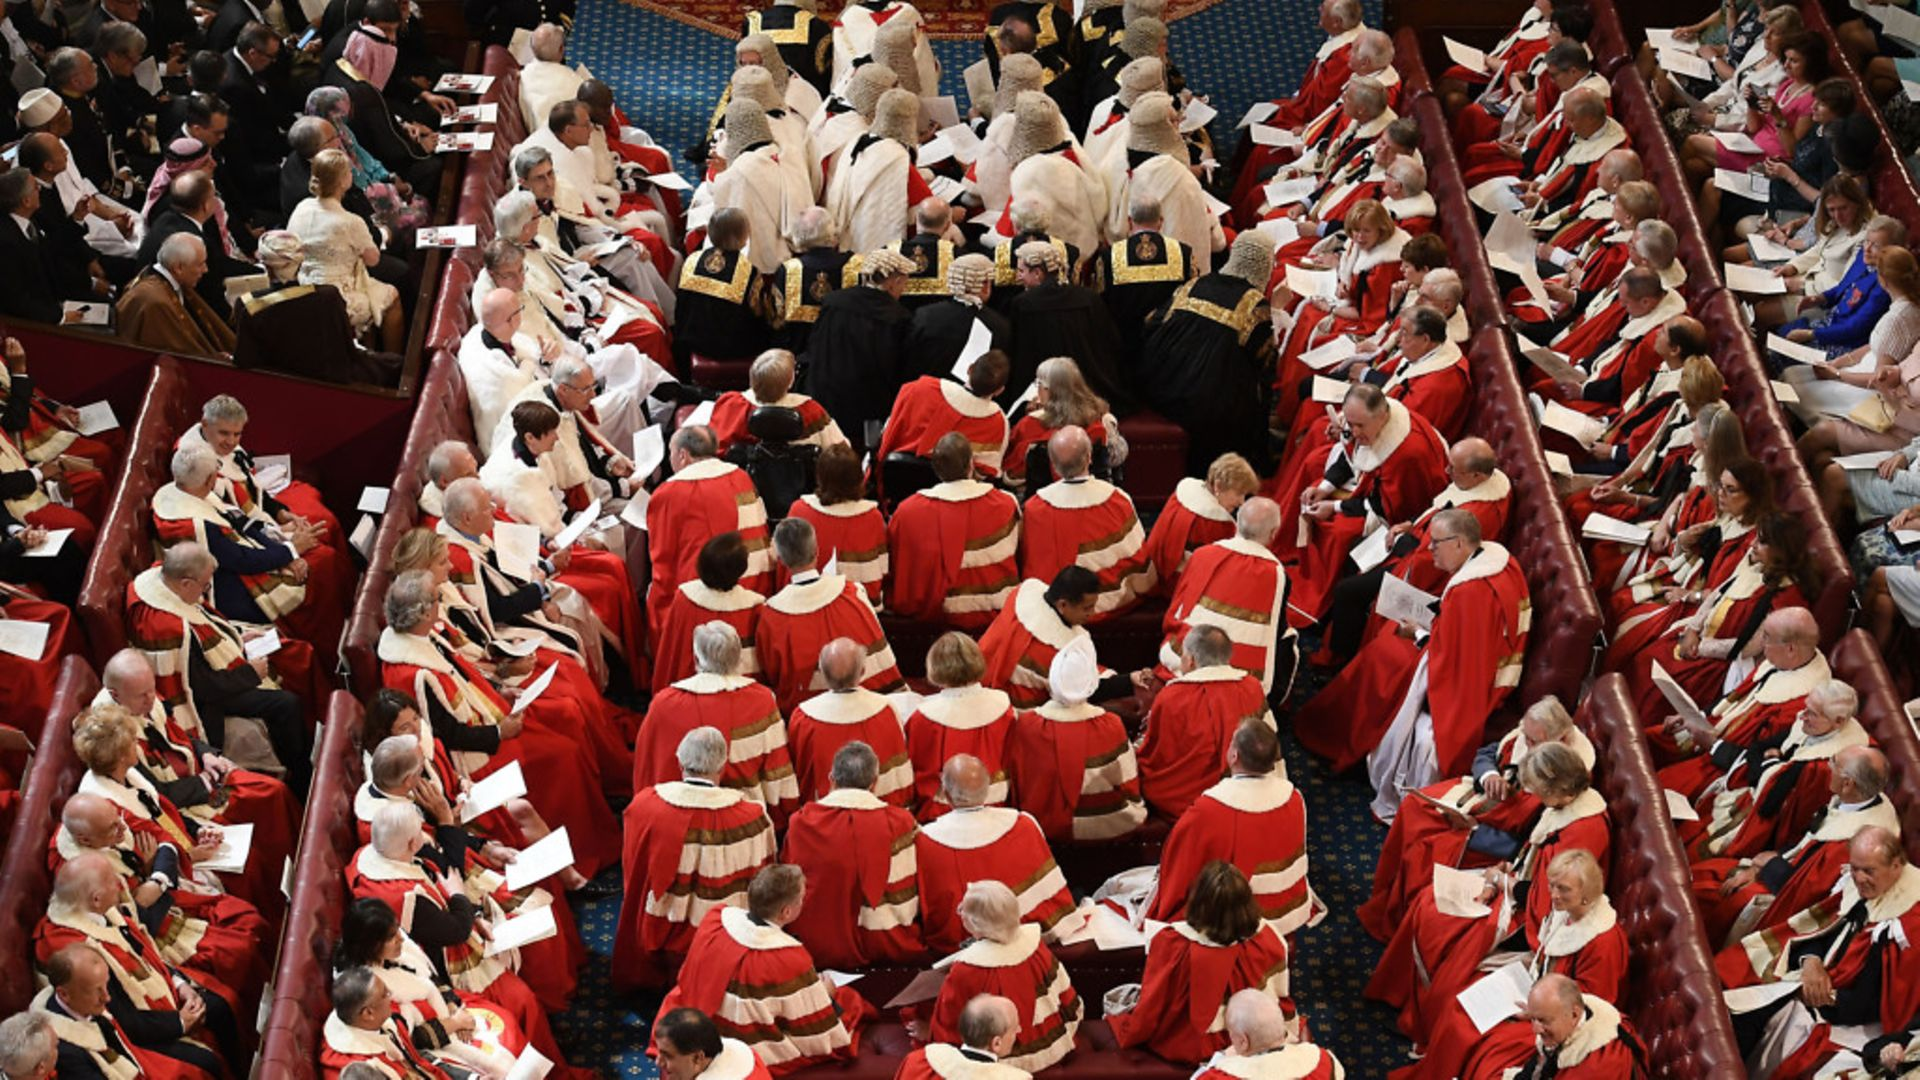 Peers take their seats in the House of Lords. Credit: Getty Images